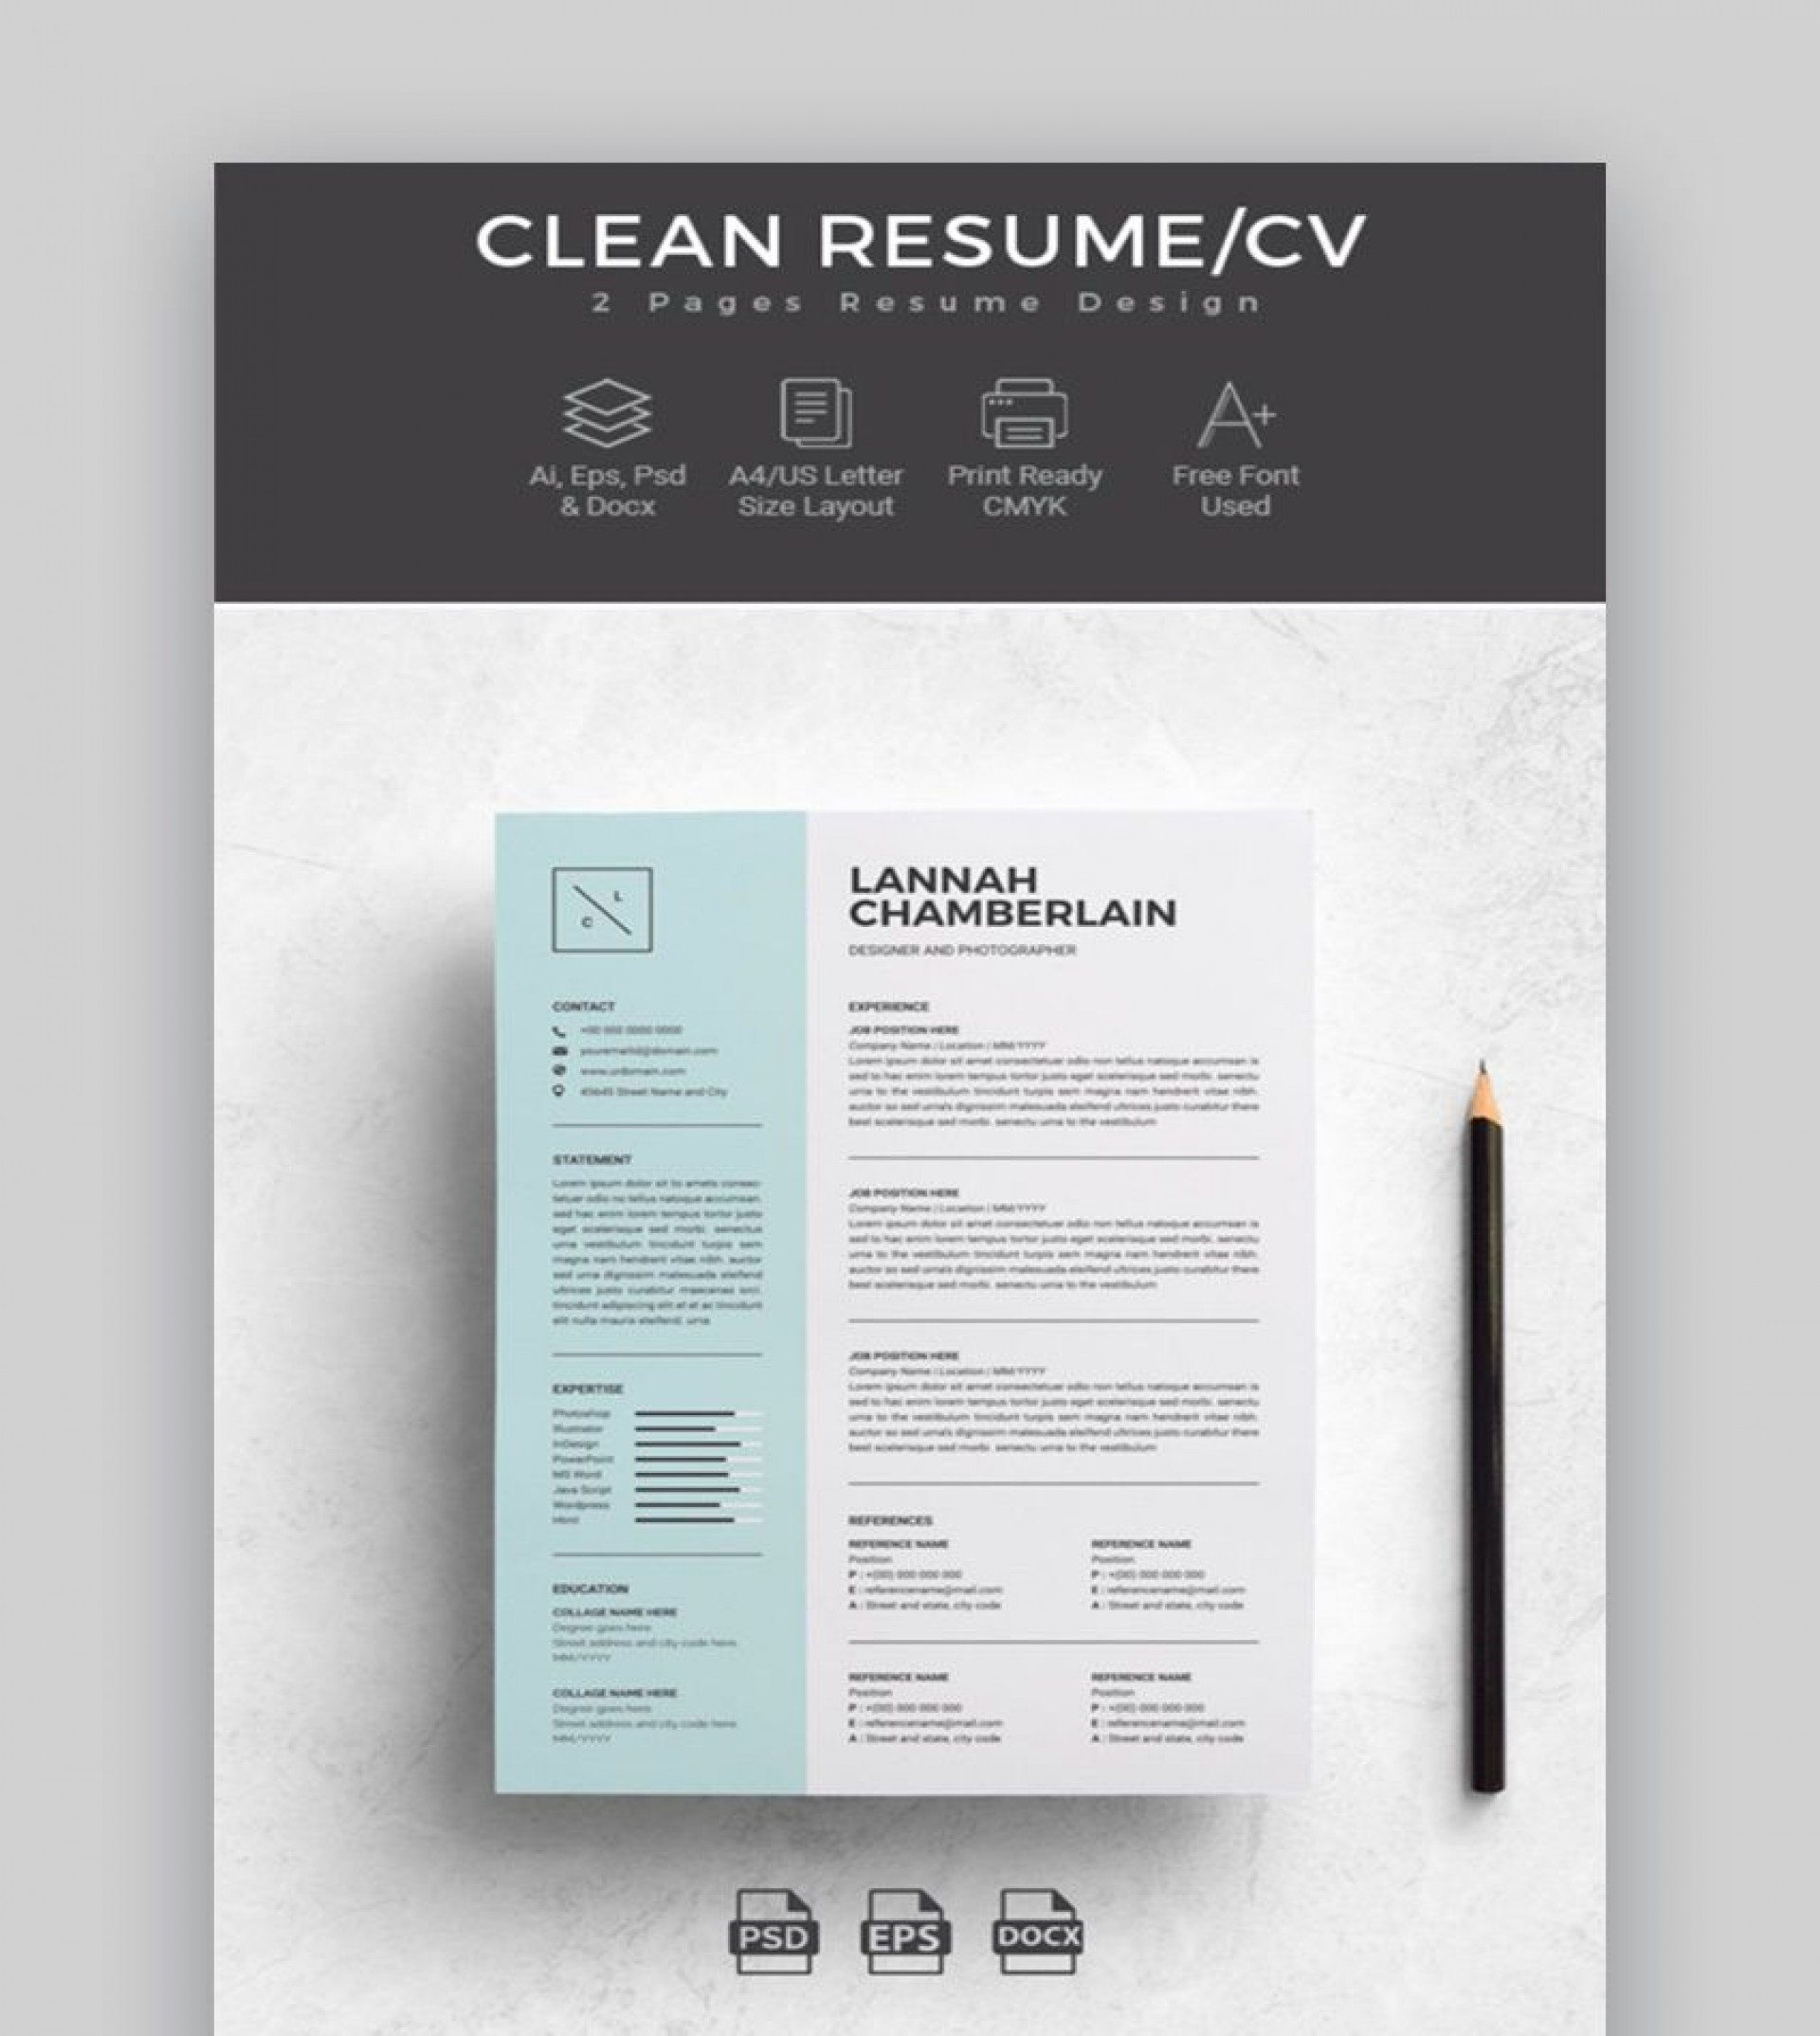 004 Unbelievable Professional Cv Template 2019 Free Download Inspiration 1920